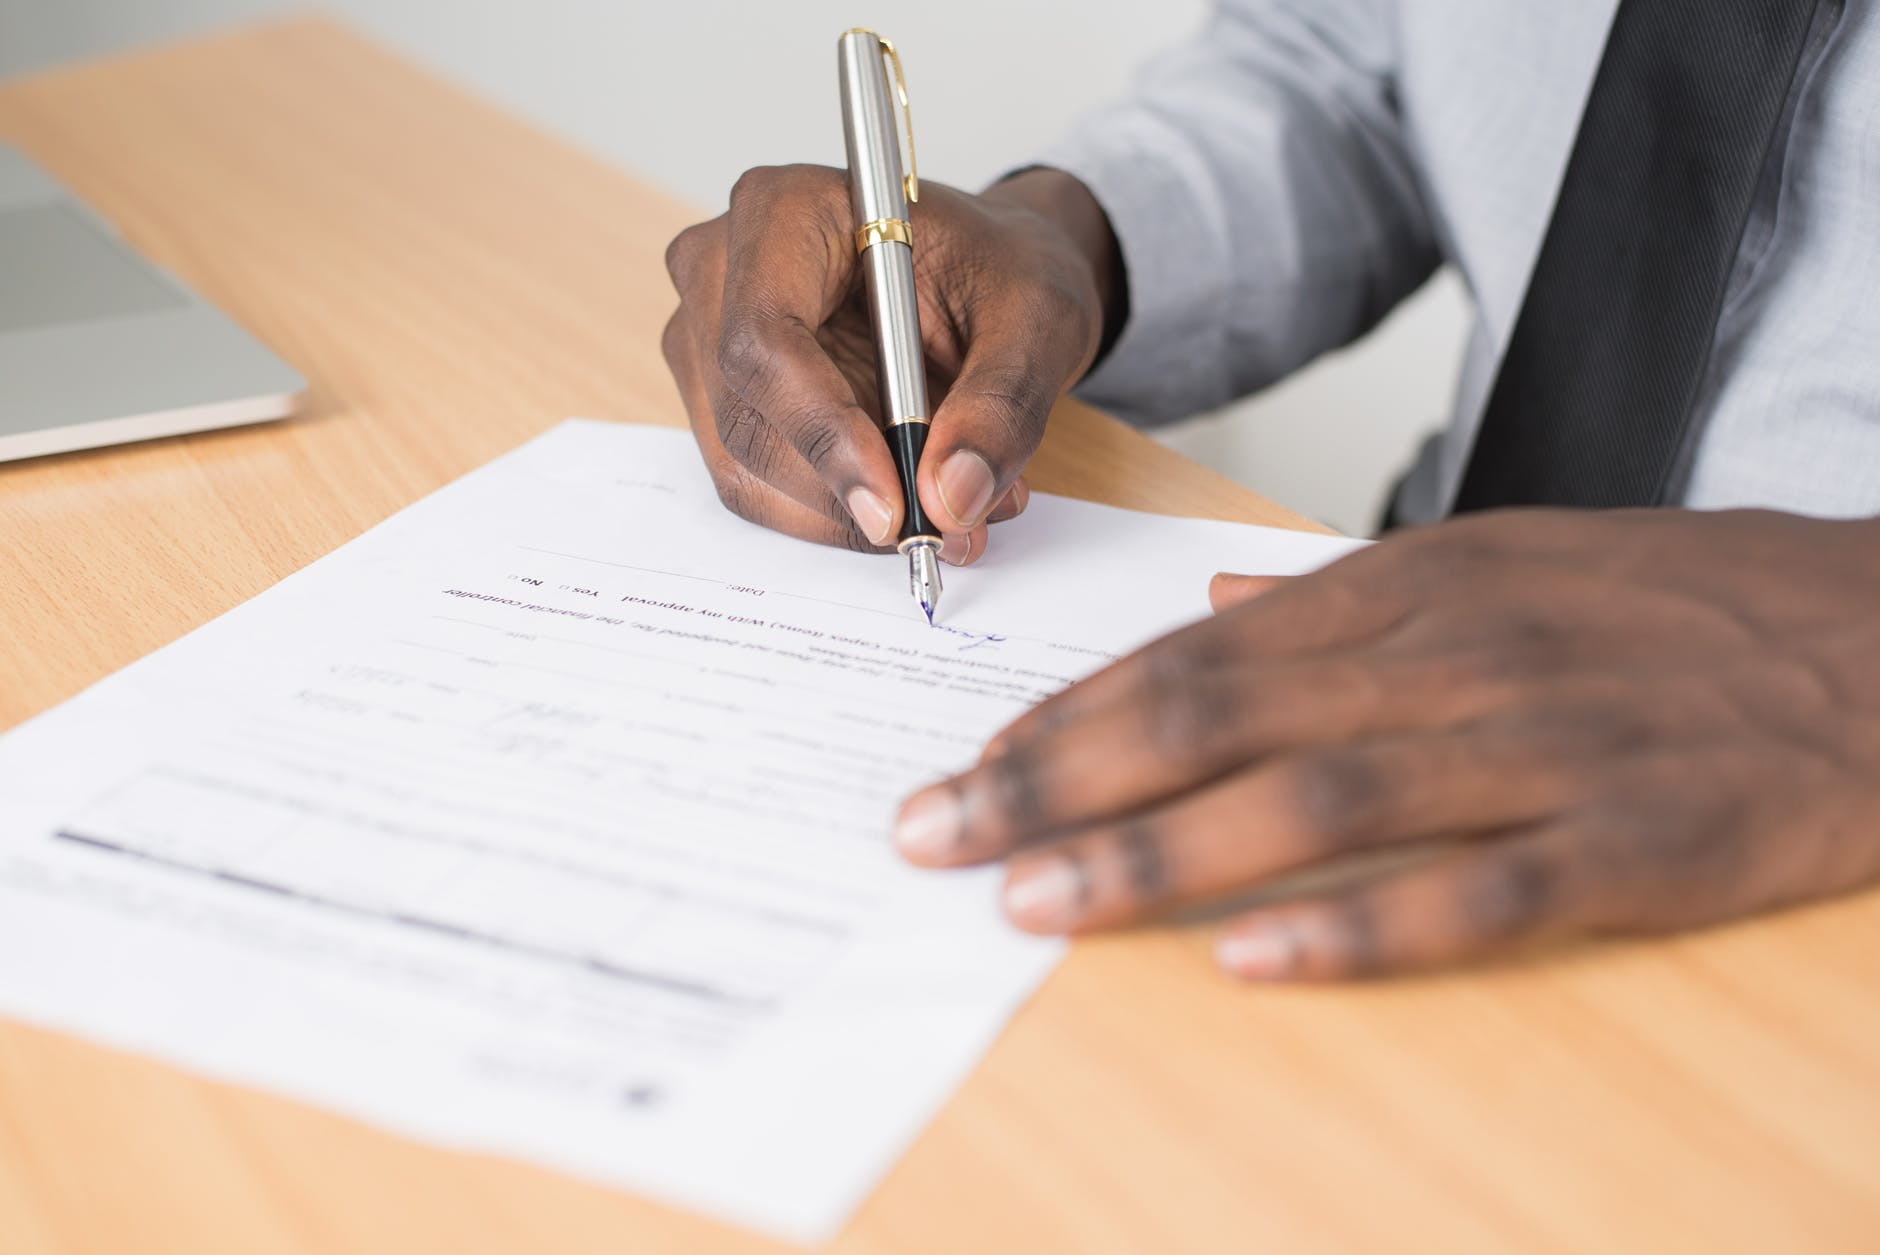 man sitting at a desk signing a form